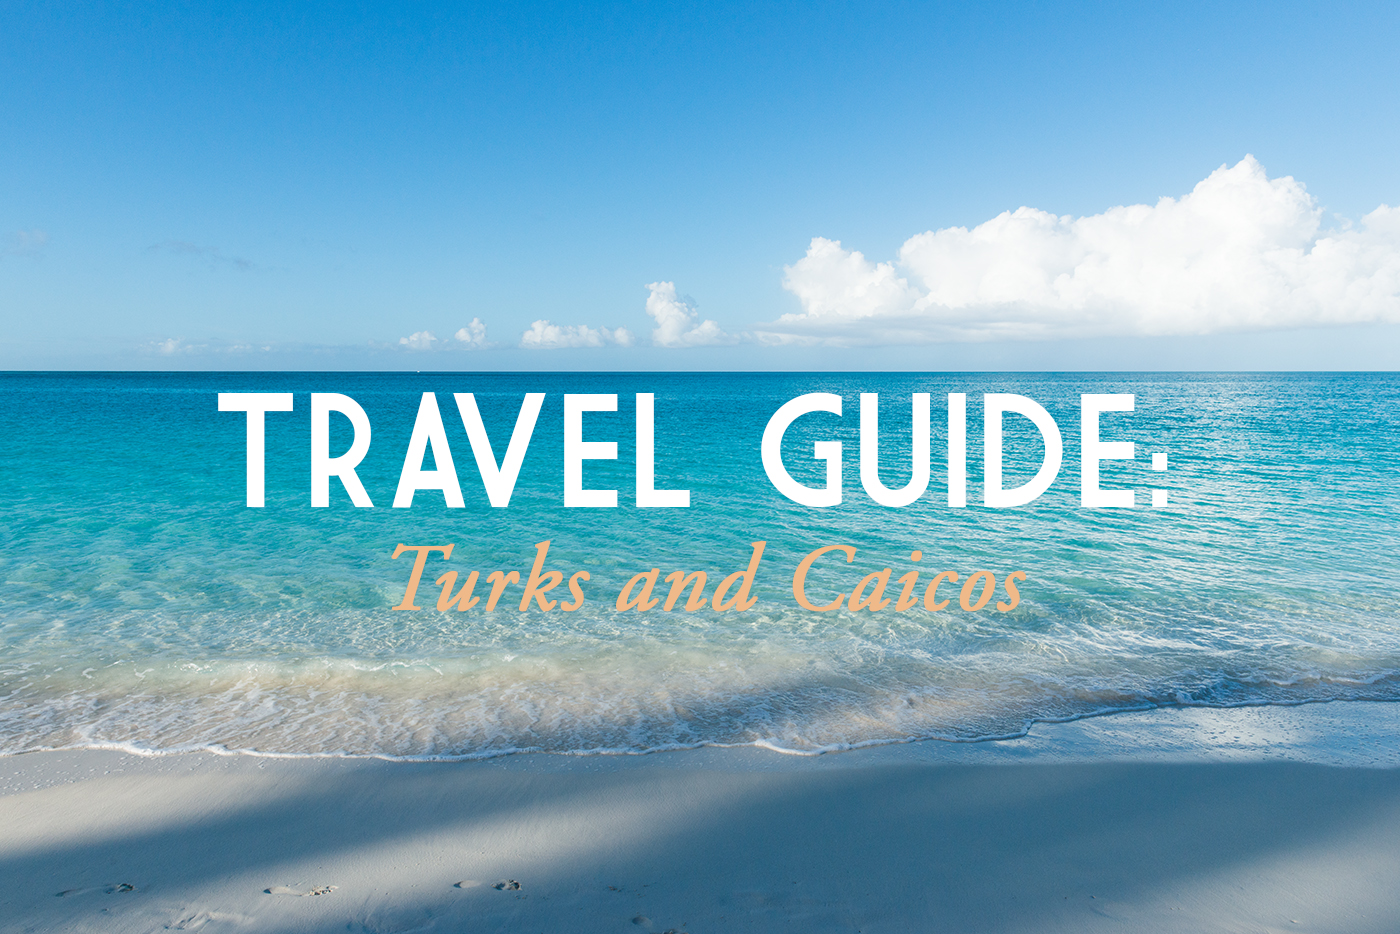 Turks and Caicos Travel Guide // 180360.com